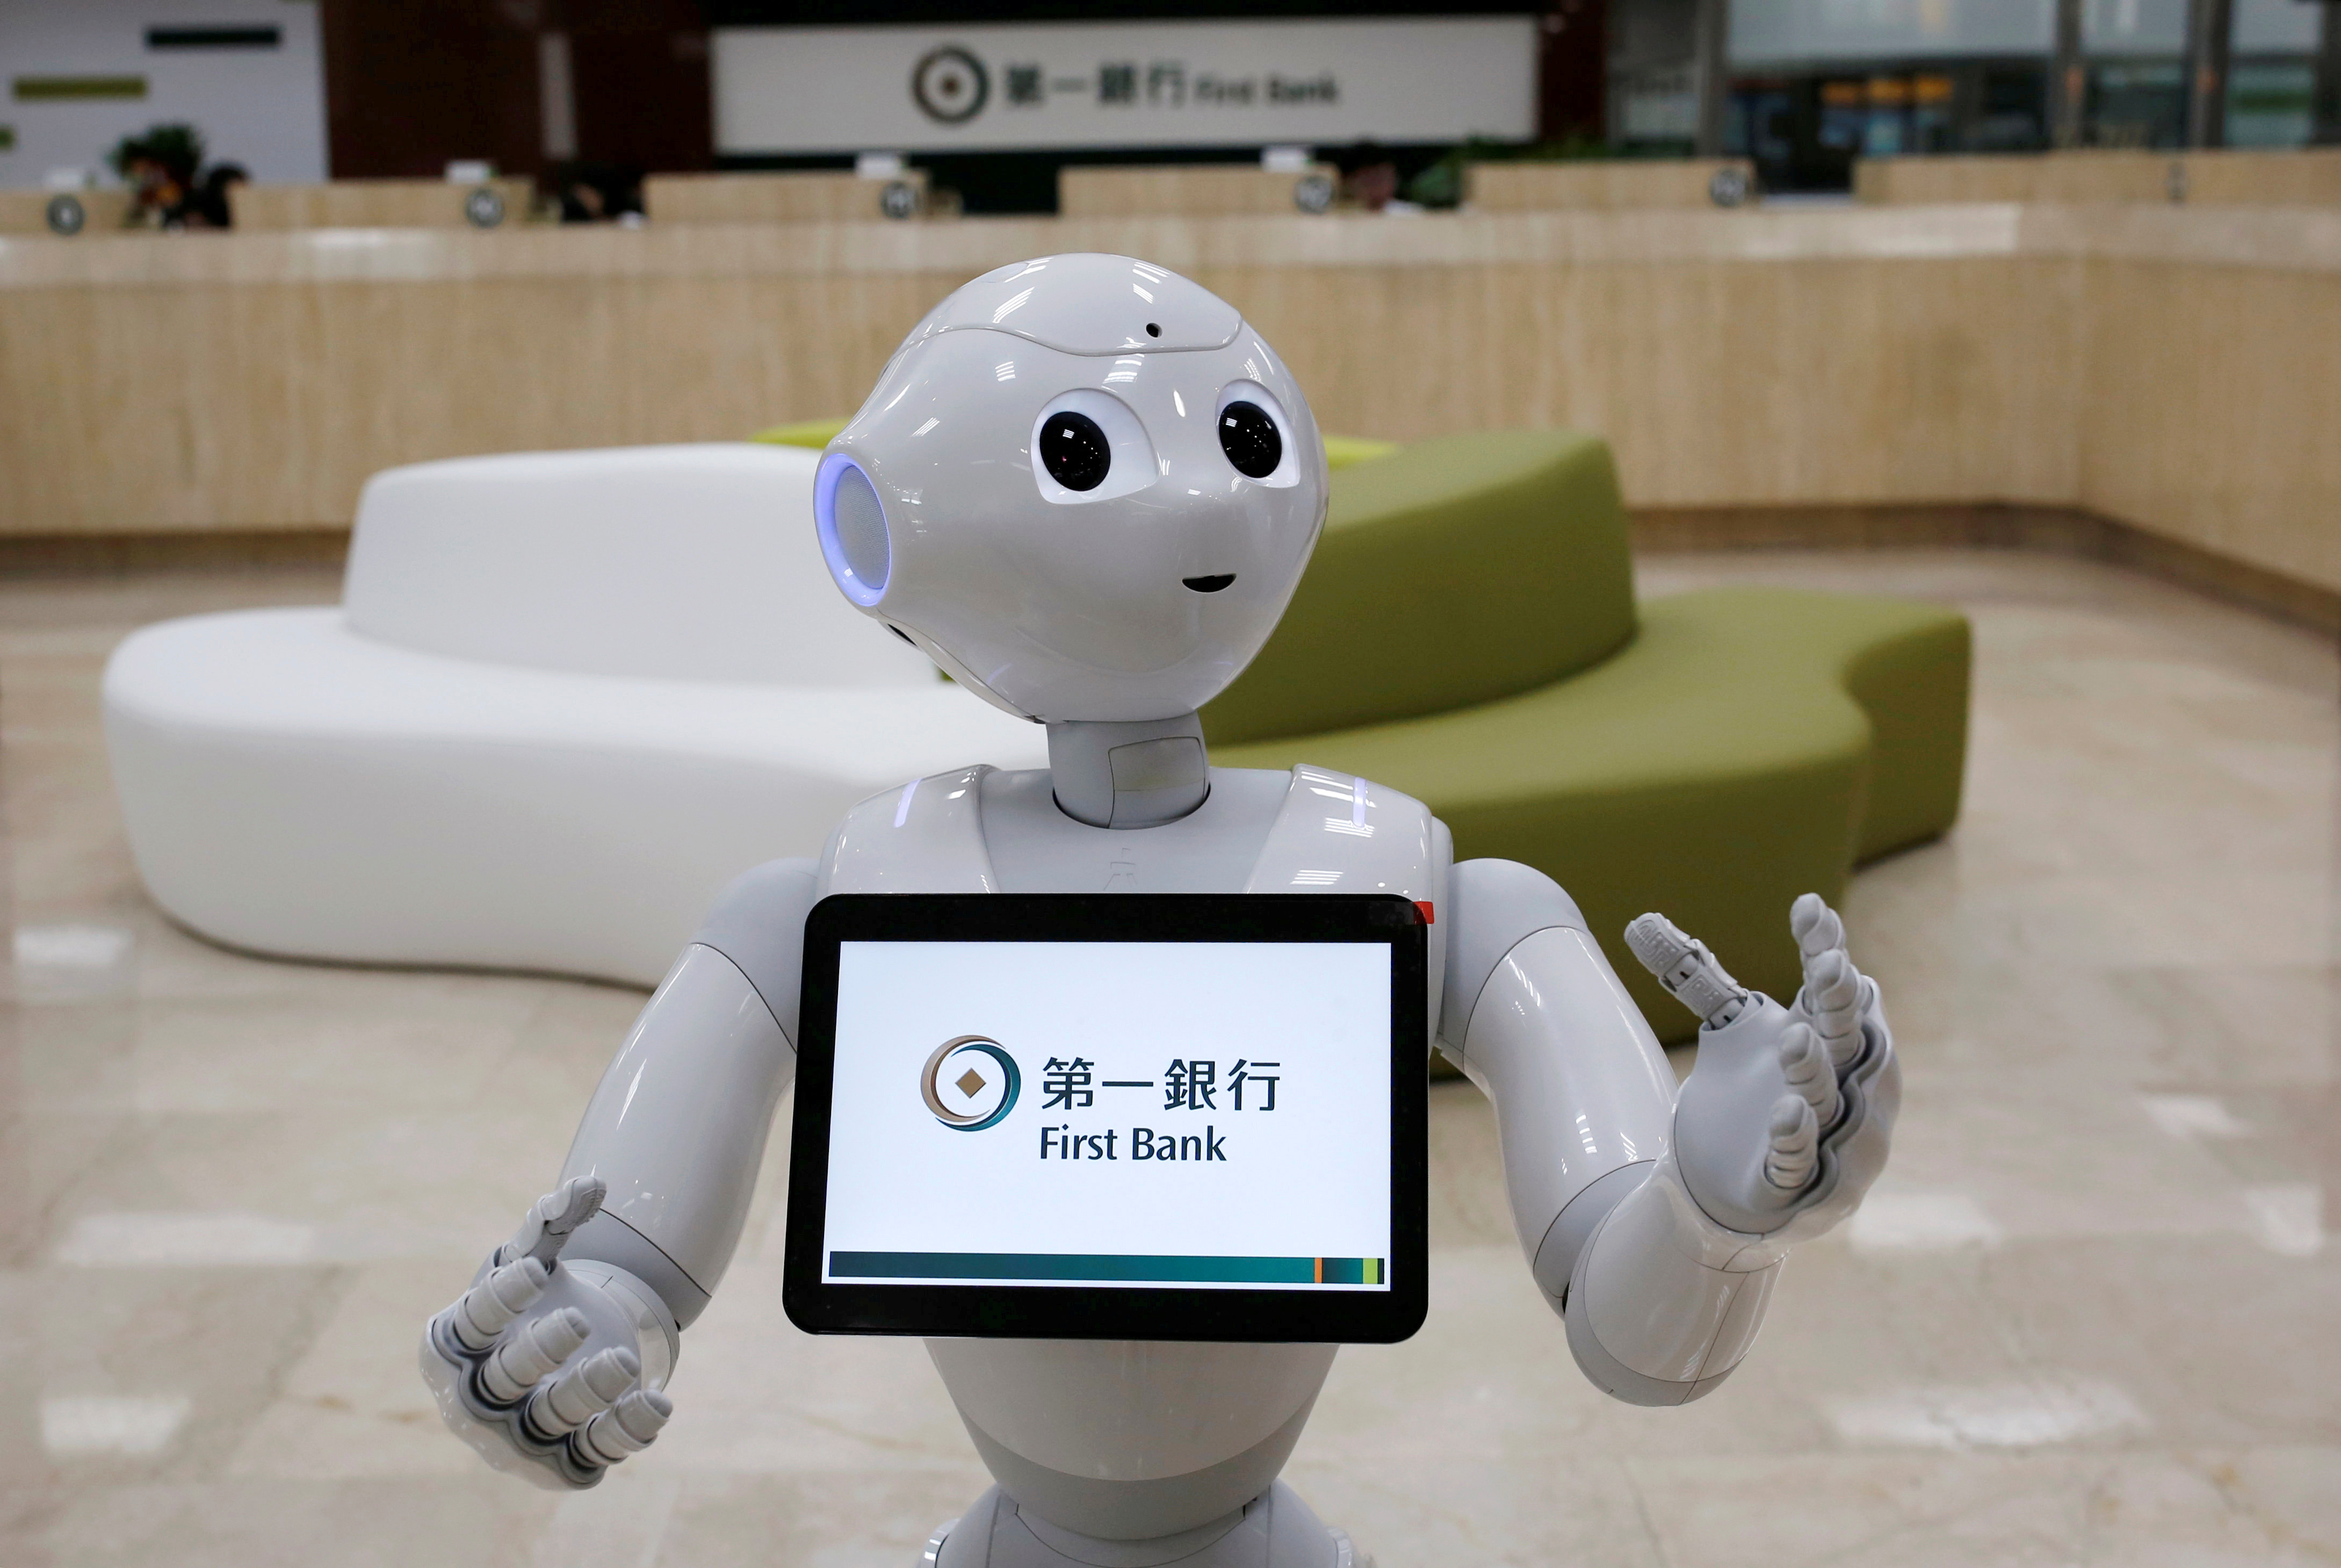 SoftBank's robot 'Pepper', is seen at First Bank branch as a concierge to welcome customers in Taipei, Taiwan October 6, 2016. REUTERS/Tyrone Siu/File Photo